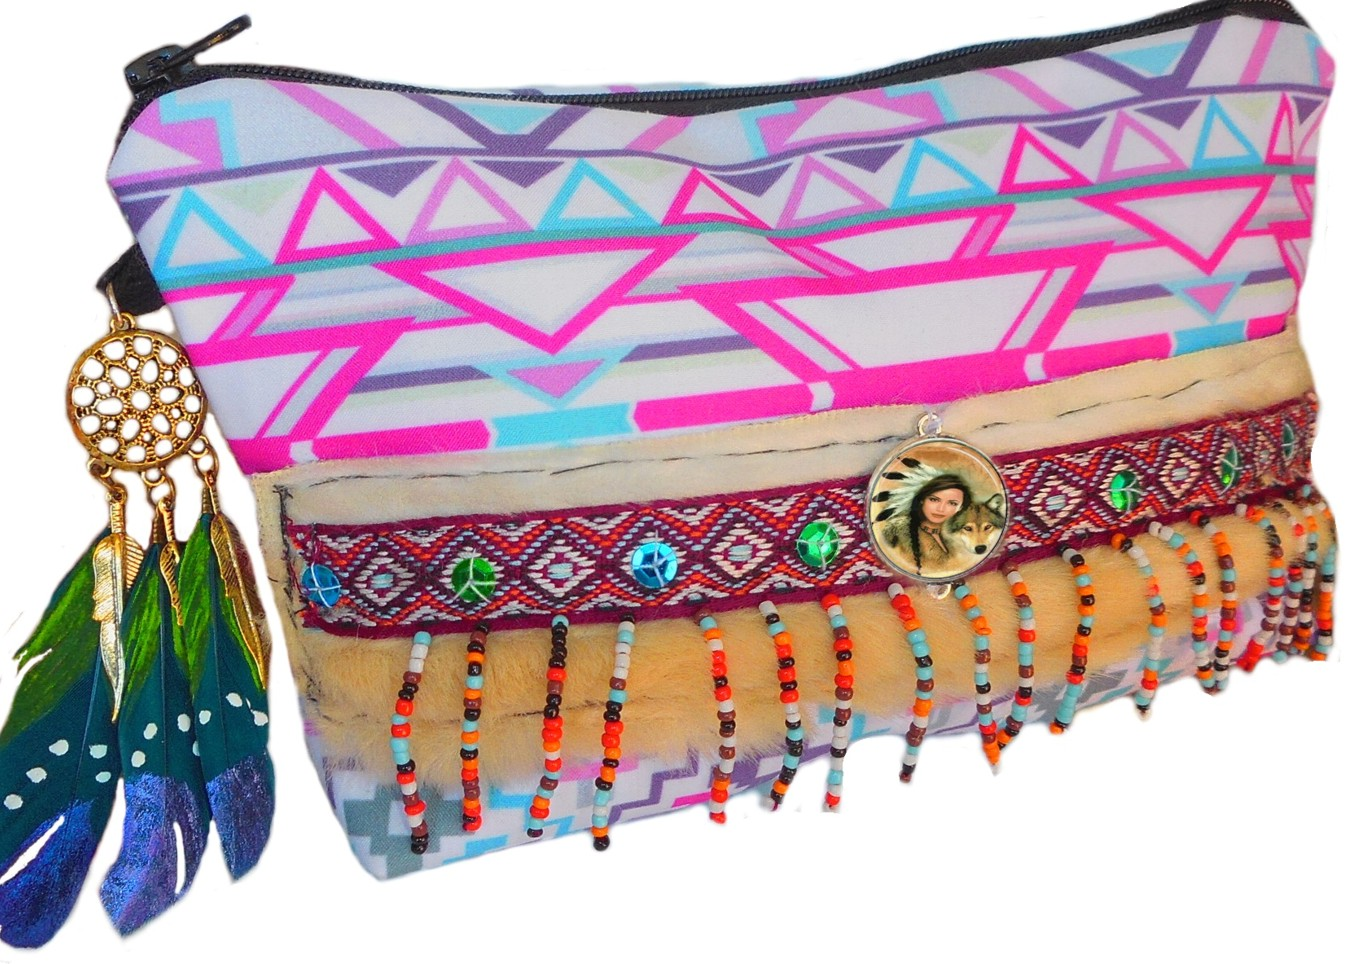 trousse maquillage style ethnique indien